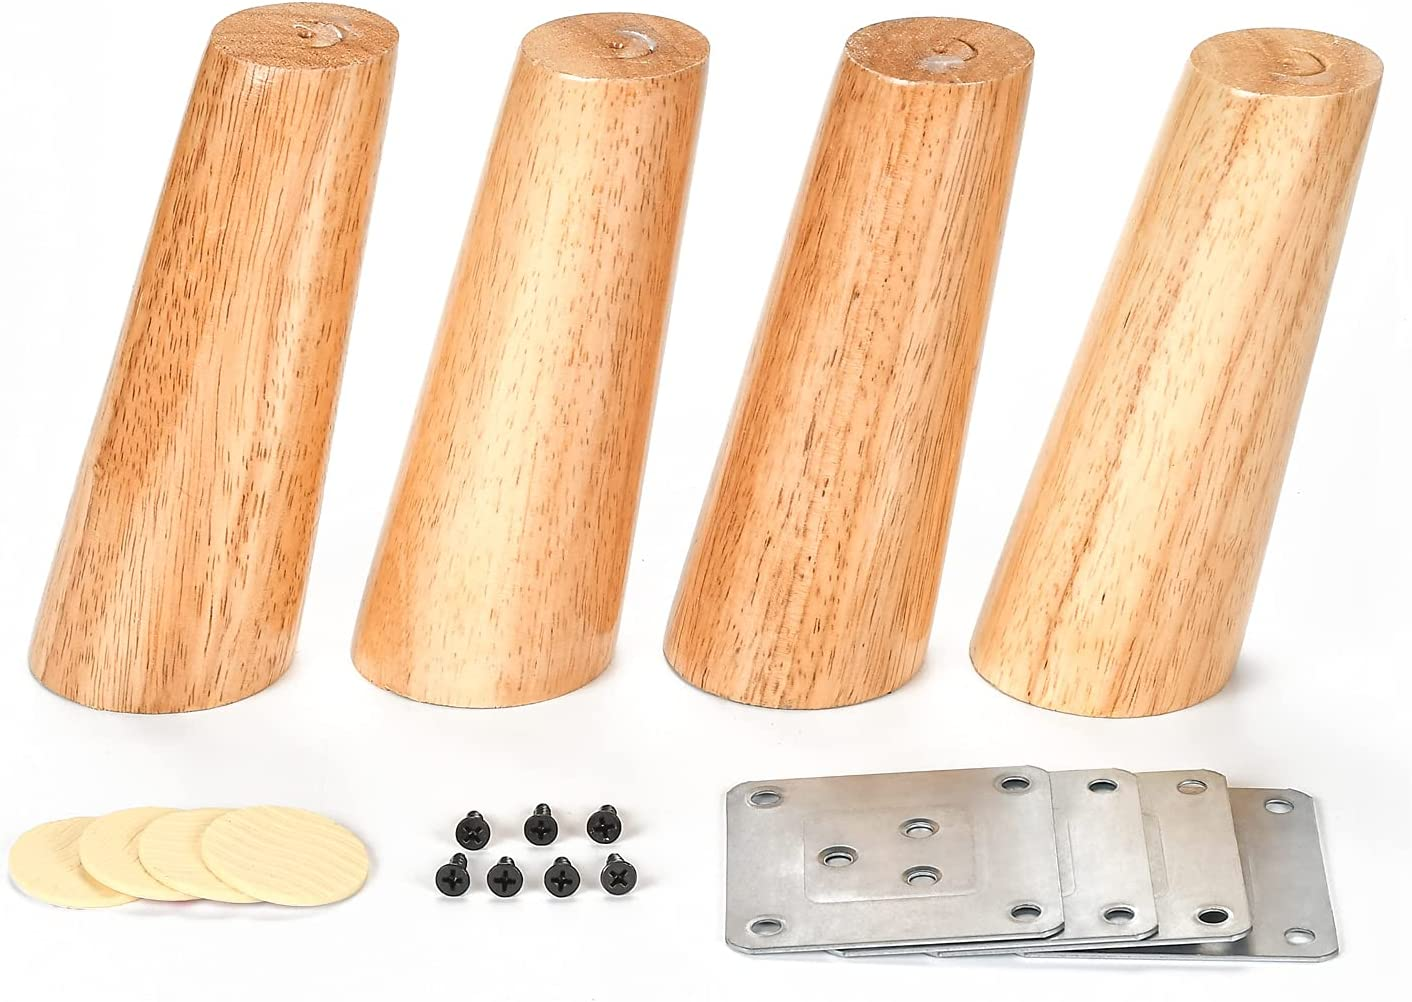 4 Pack Oblique Tapered Furniture Legs 6 Inch High (15cm) Cabinet Legs Solid Wood Sofa Legs Couch Legs Hardware Furniture Wood Legs for Bed Desk Table with Stainless Plates